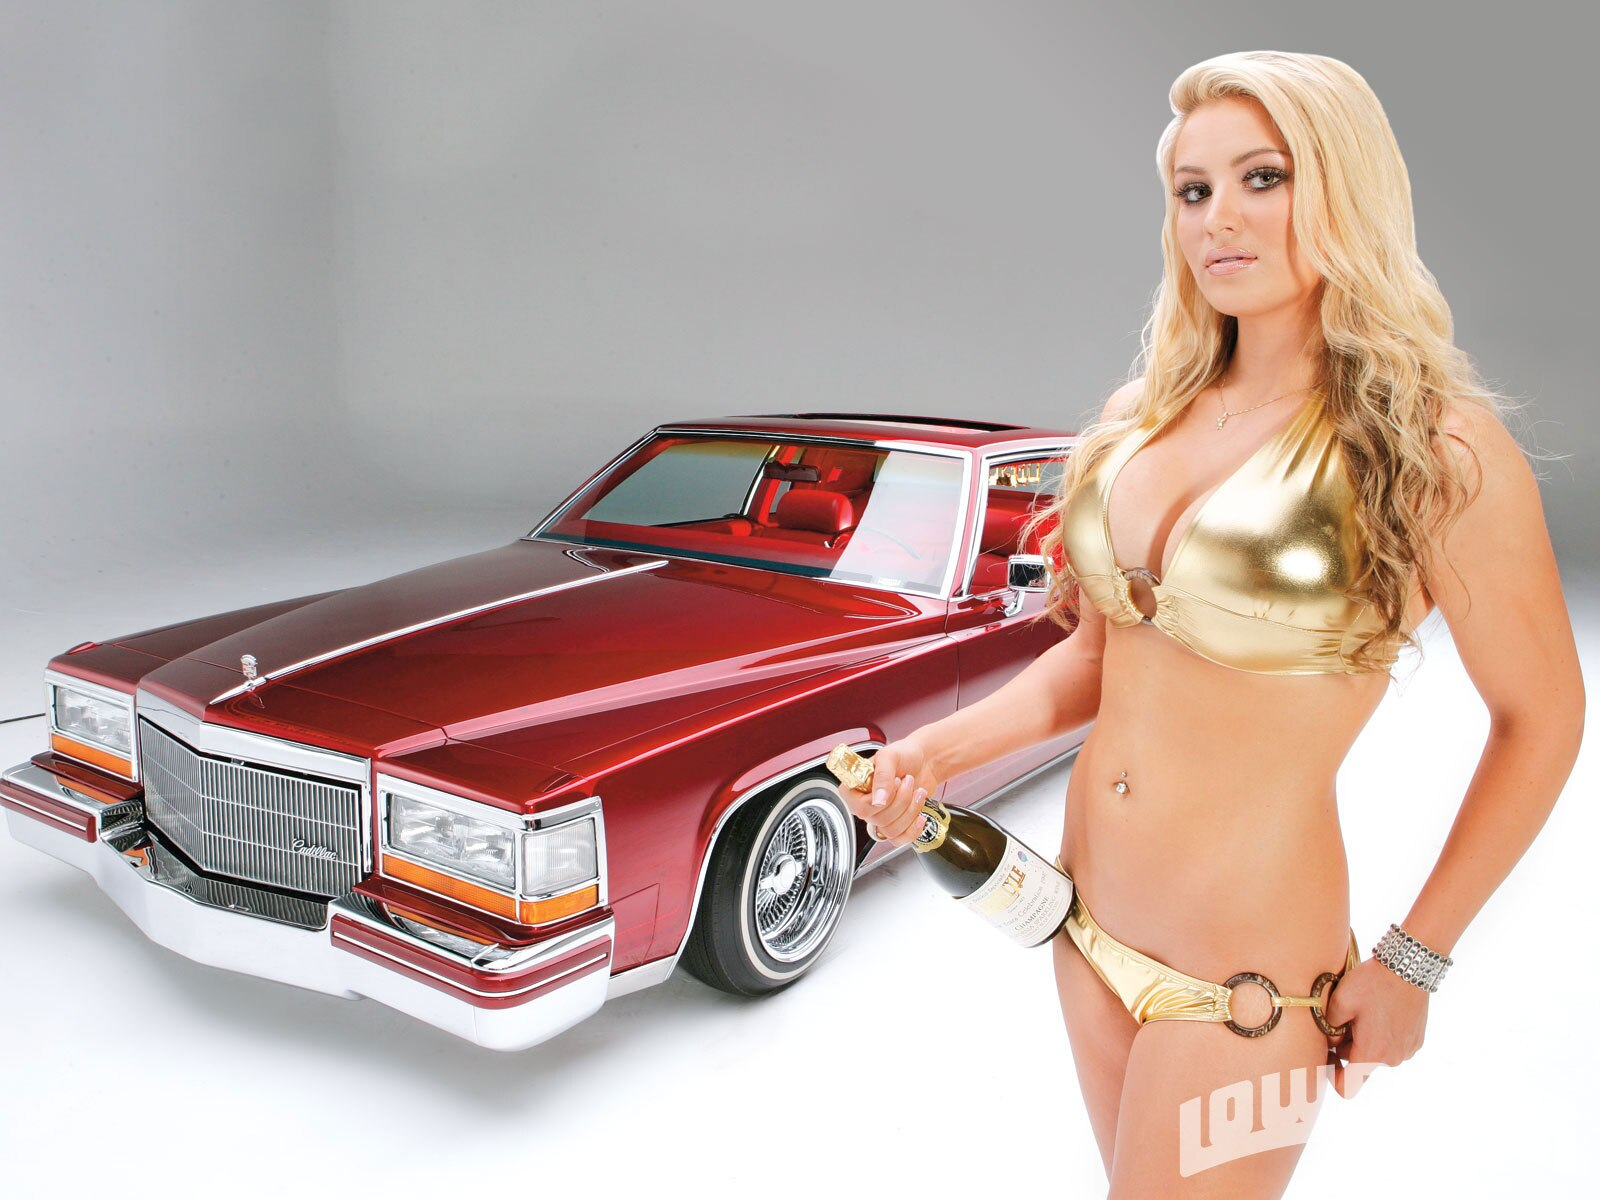 1105-lrms-05-o-samantha-whitfield-lowrider-girls-model-2